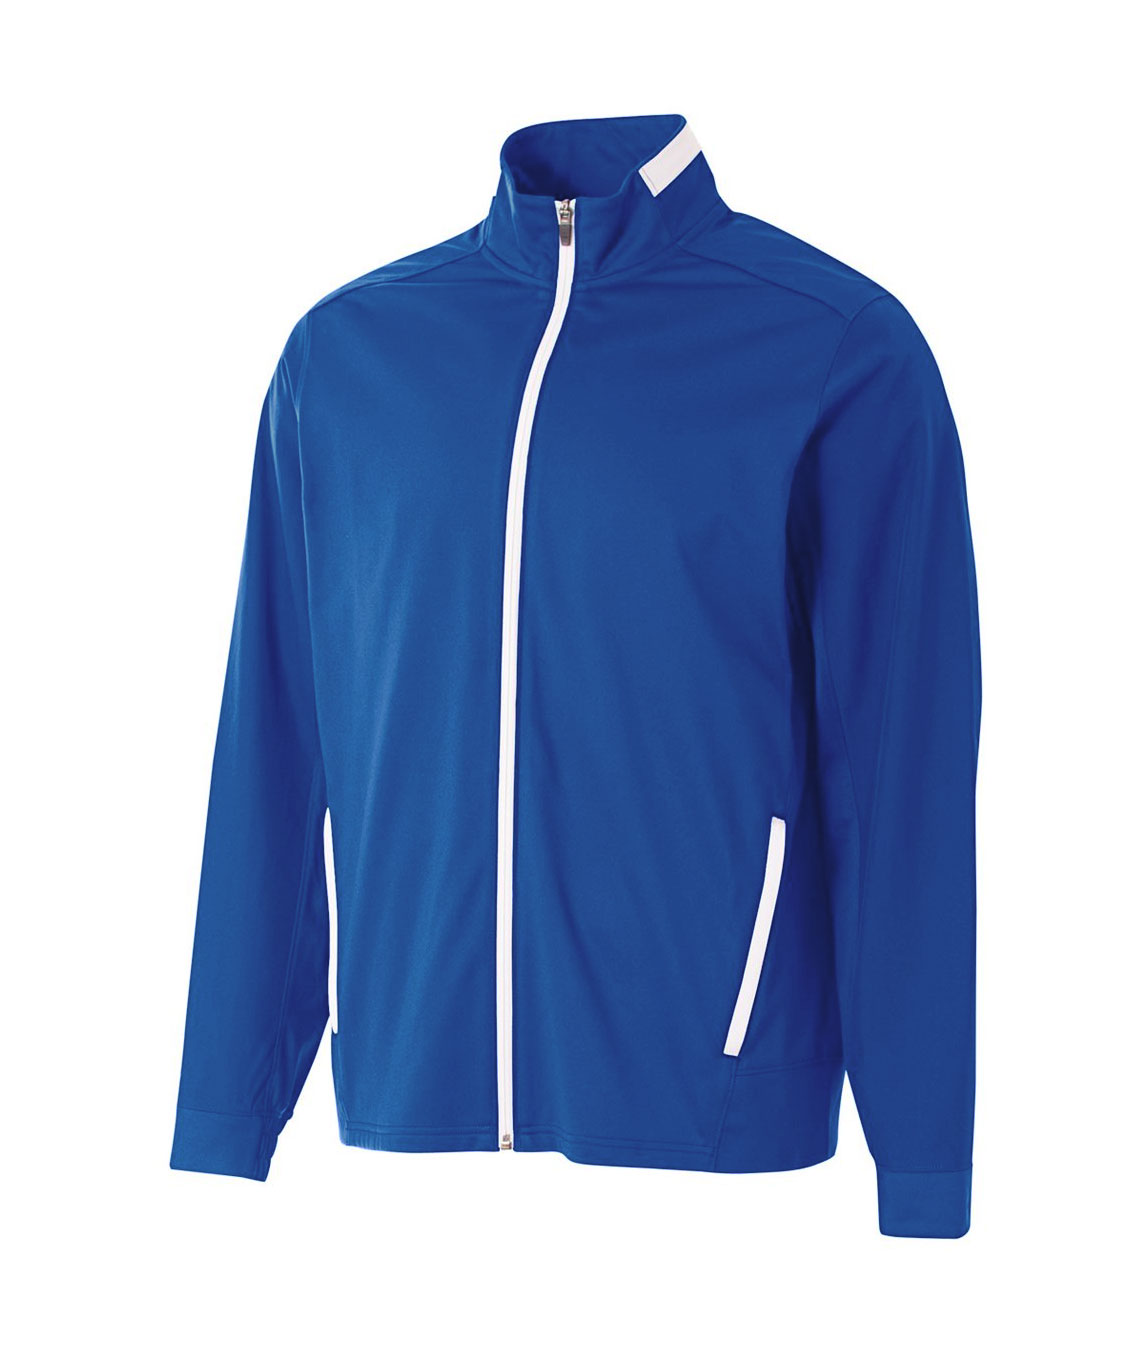 Youth League Full Zip Warm Up Jacket